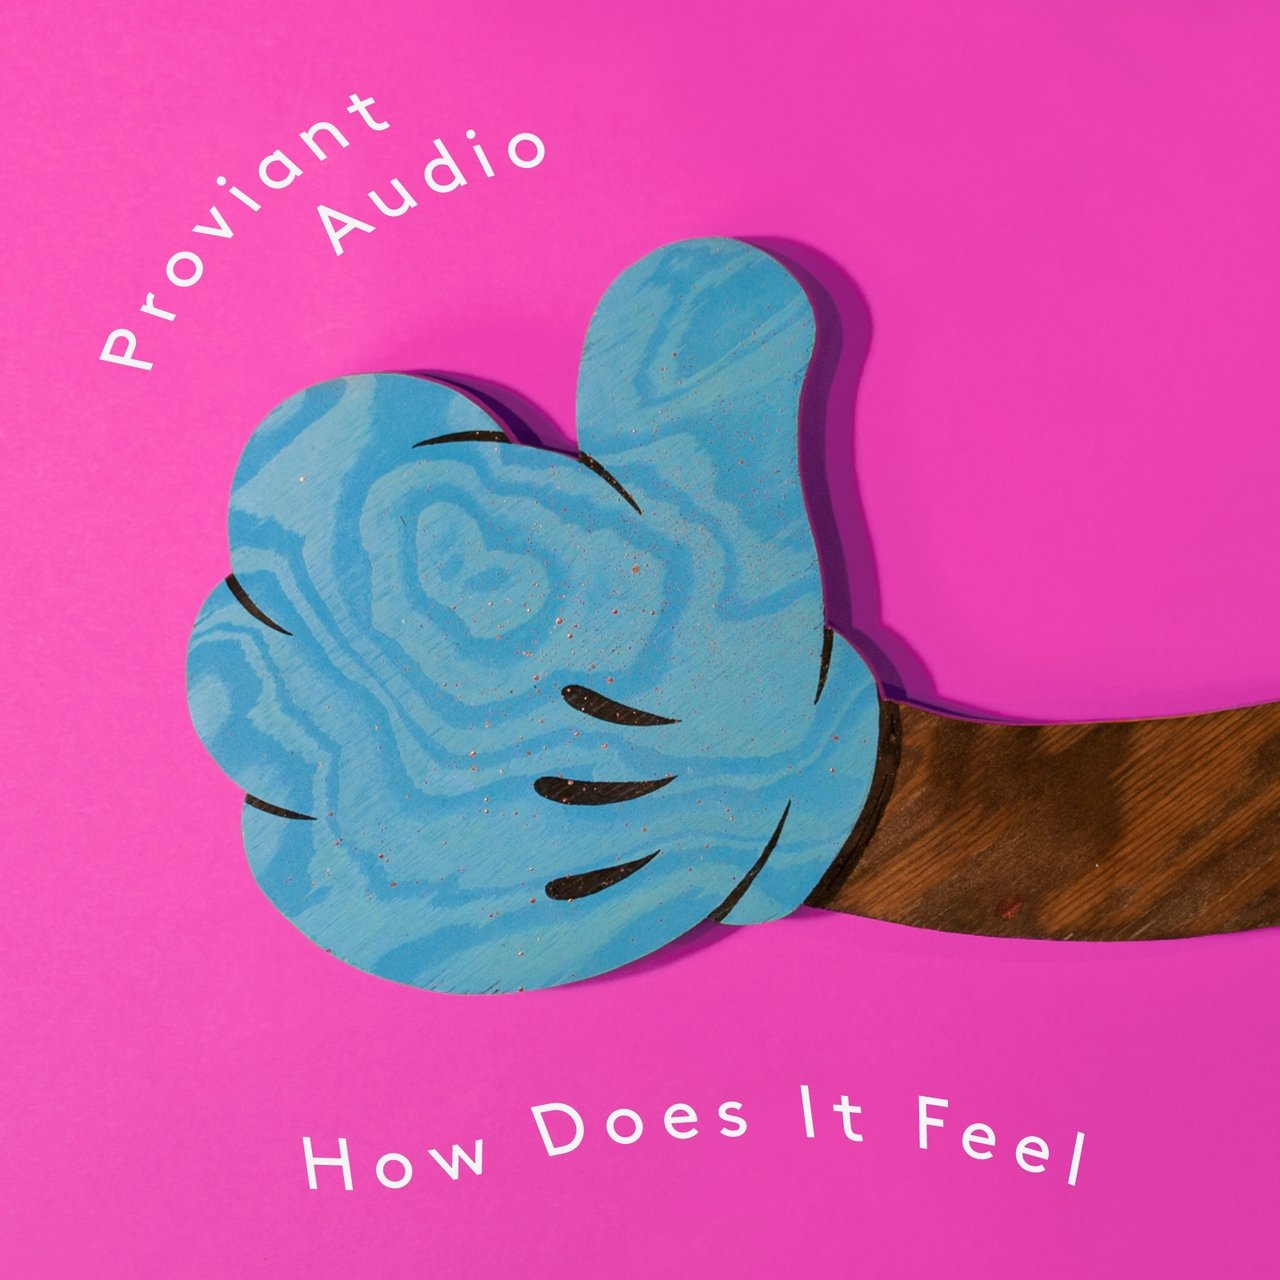 How Does It Feel (feat. LidoLido) – Radio Edit